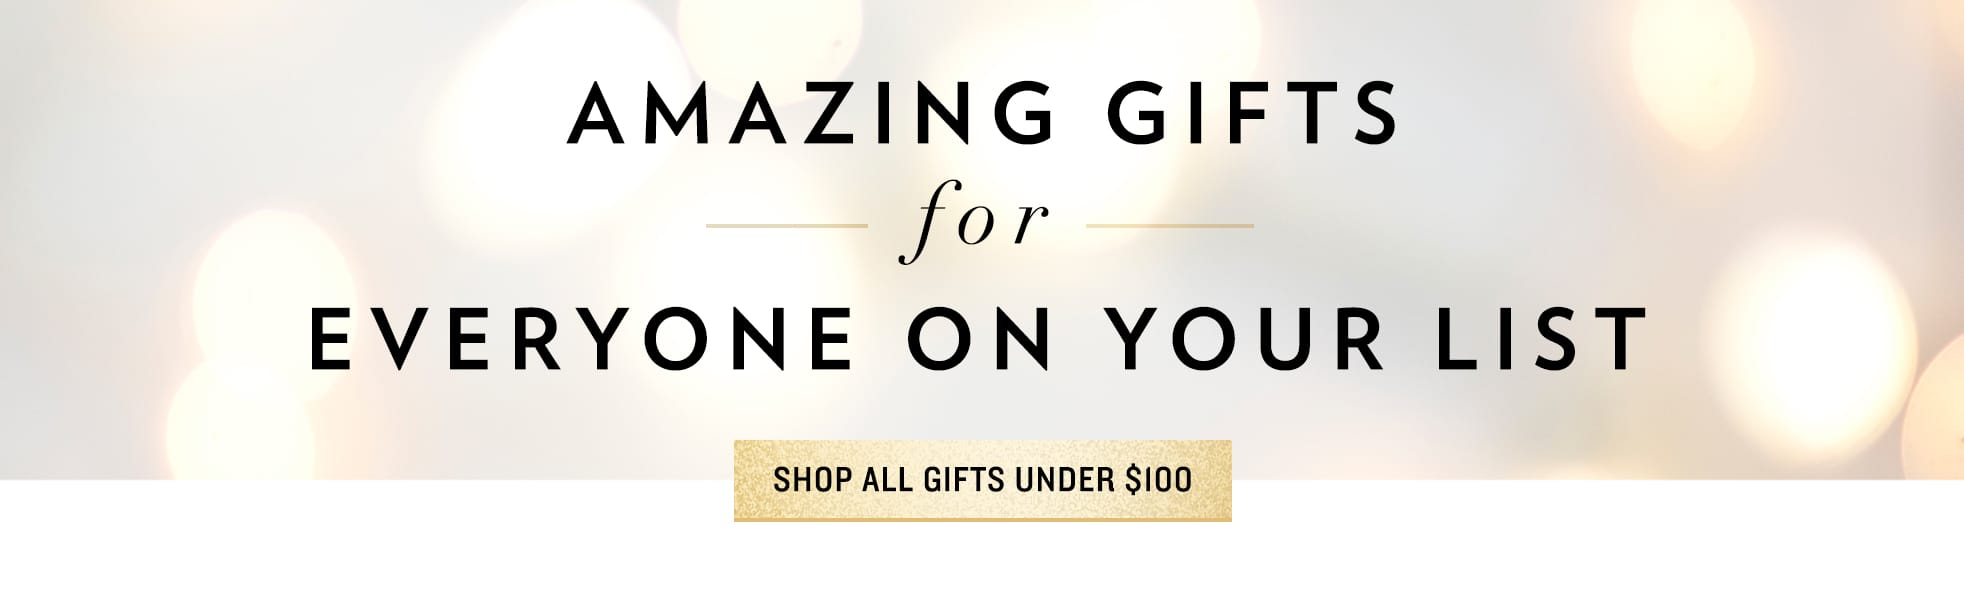 Shop All Gifts Under $100